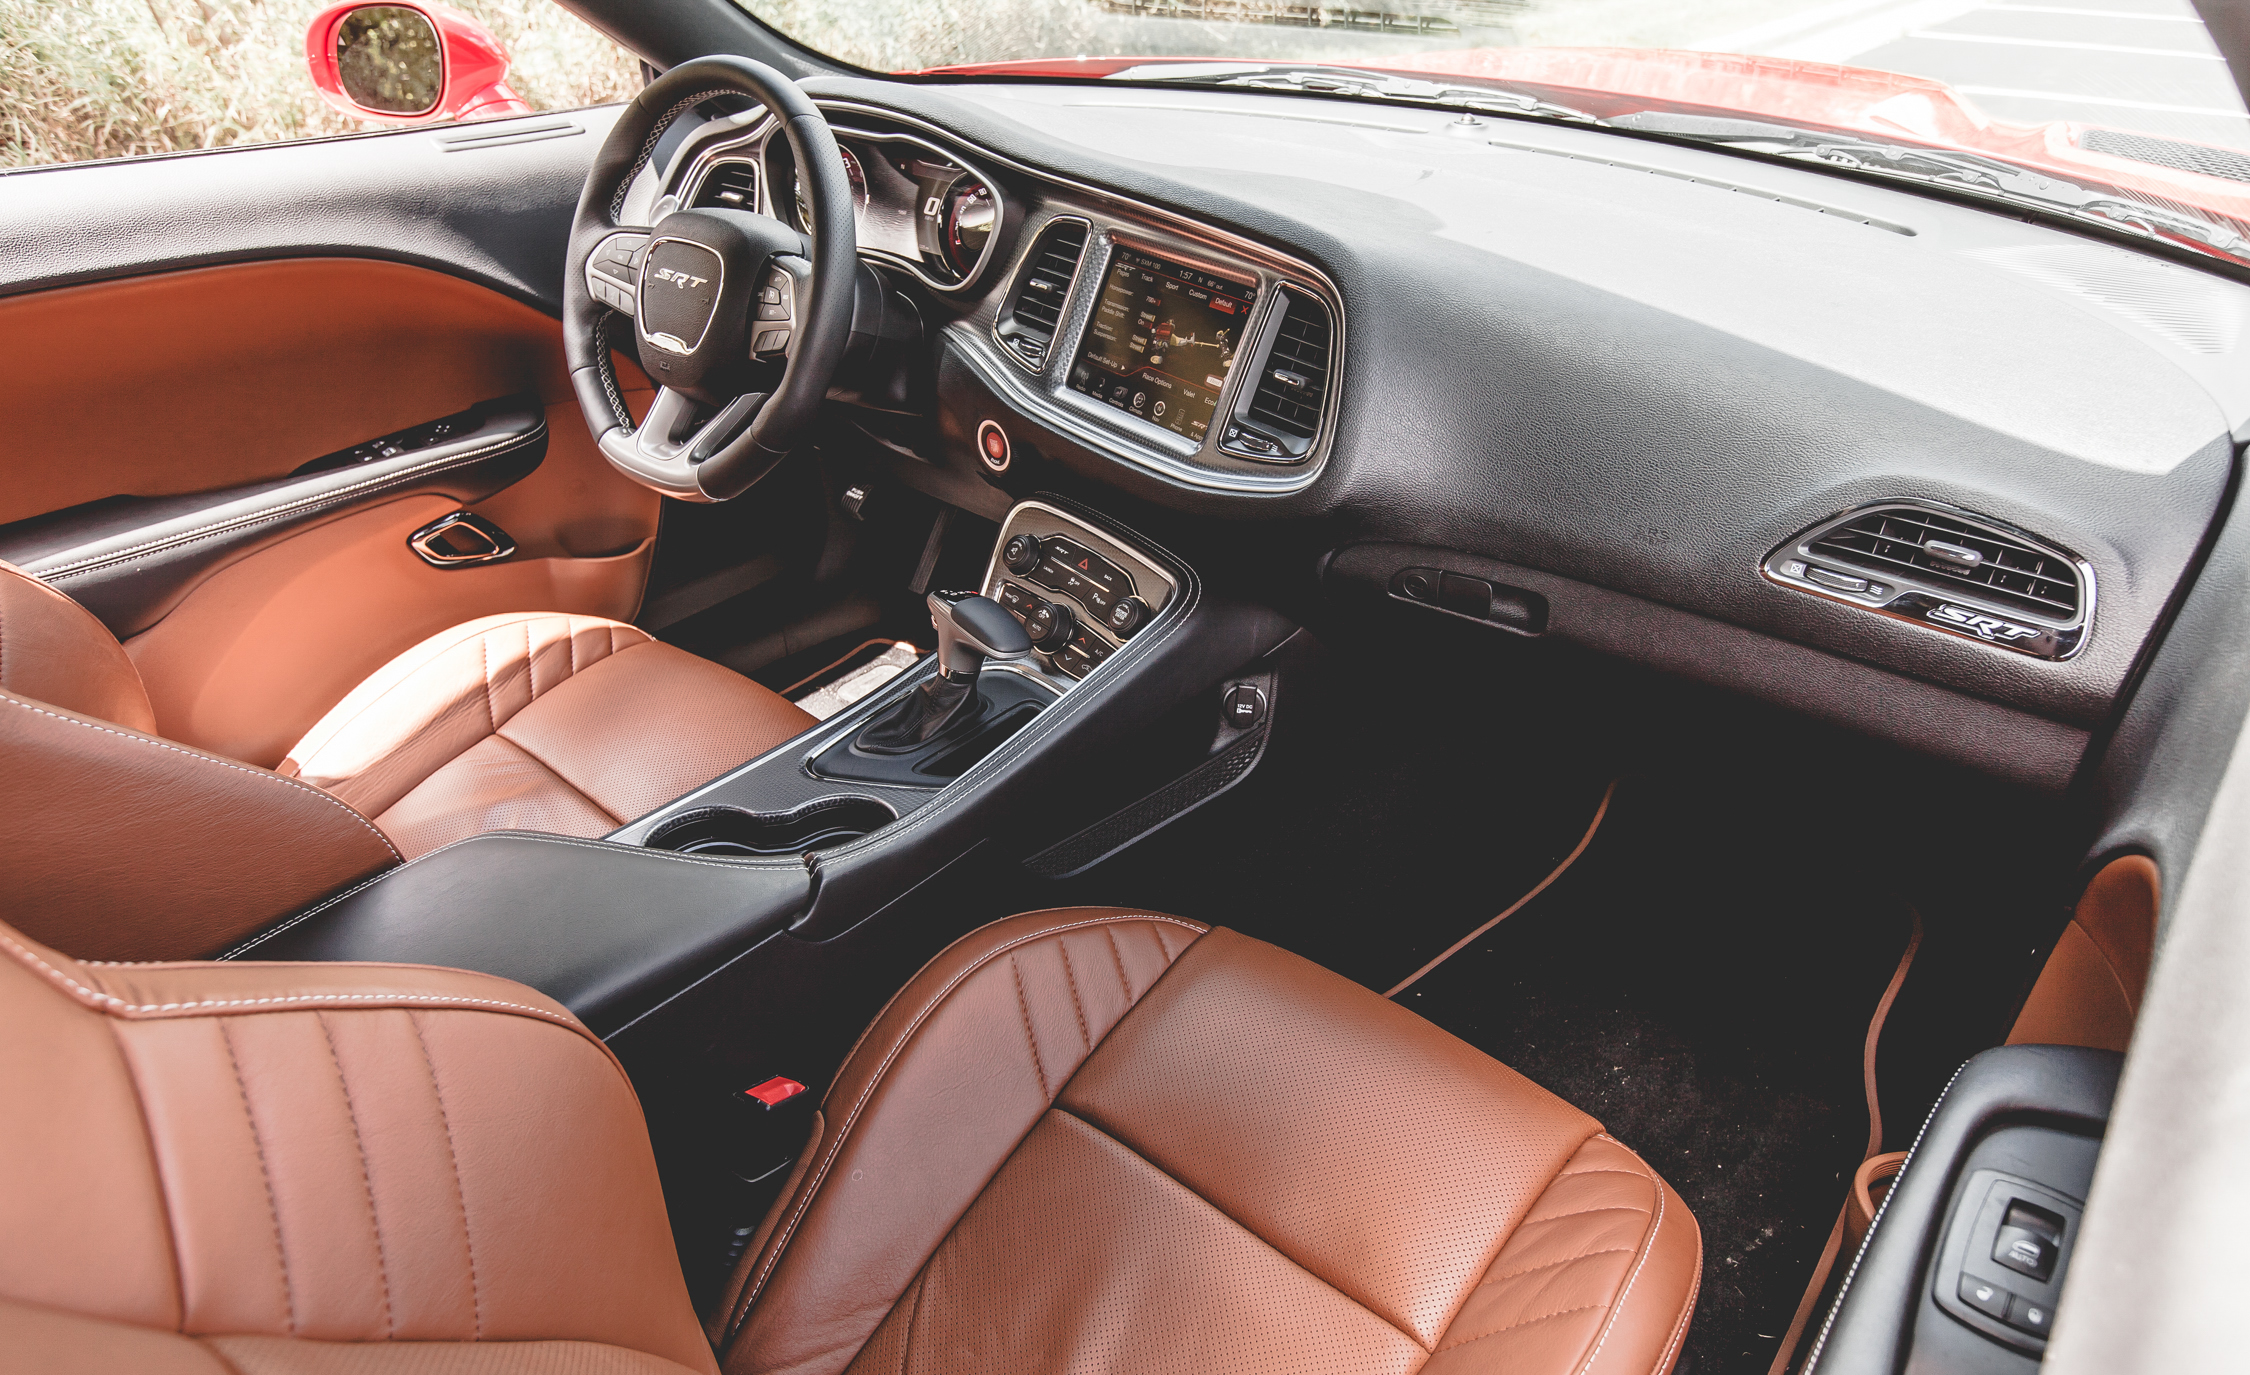 2015 Dodge Challenger SRT Hellcat Interior (Photo 12 of 22)